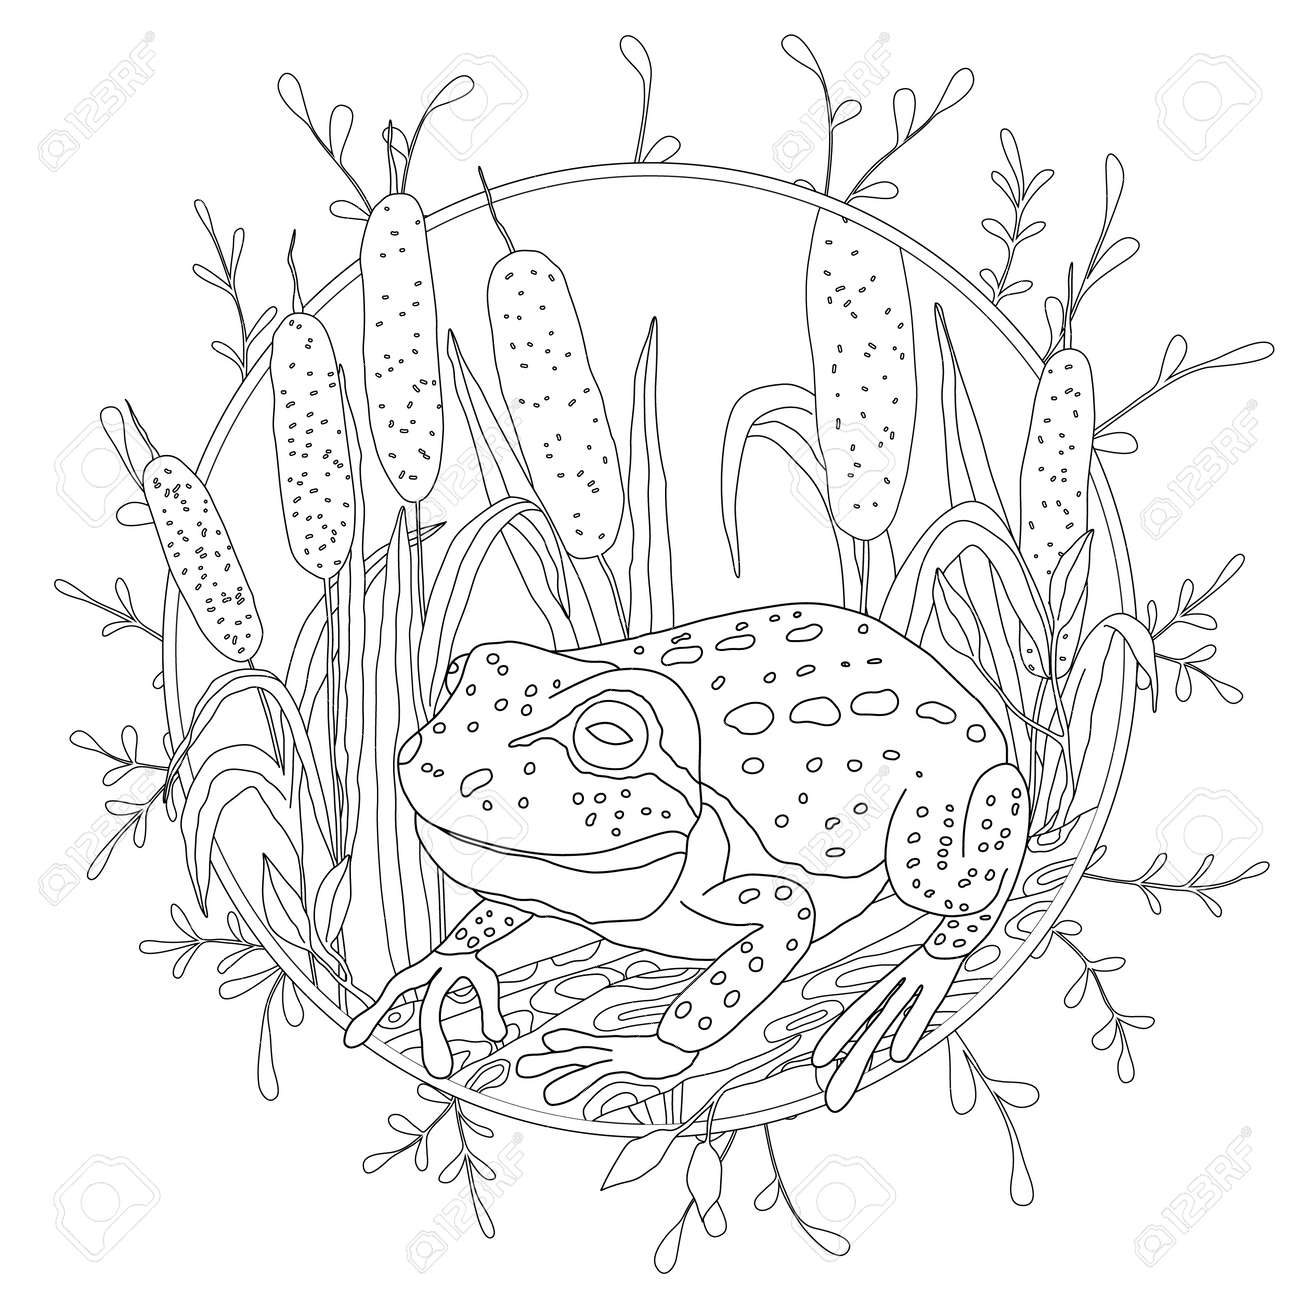 A Stylized Frog Sits Among The Reeds Sketch For Adult Anti Stress Coloring Stock